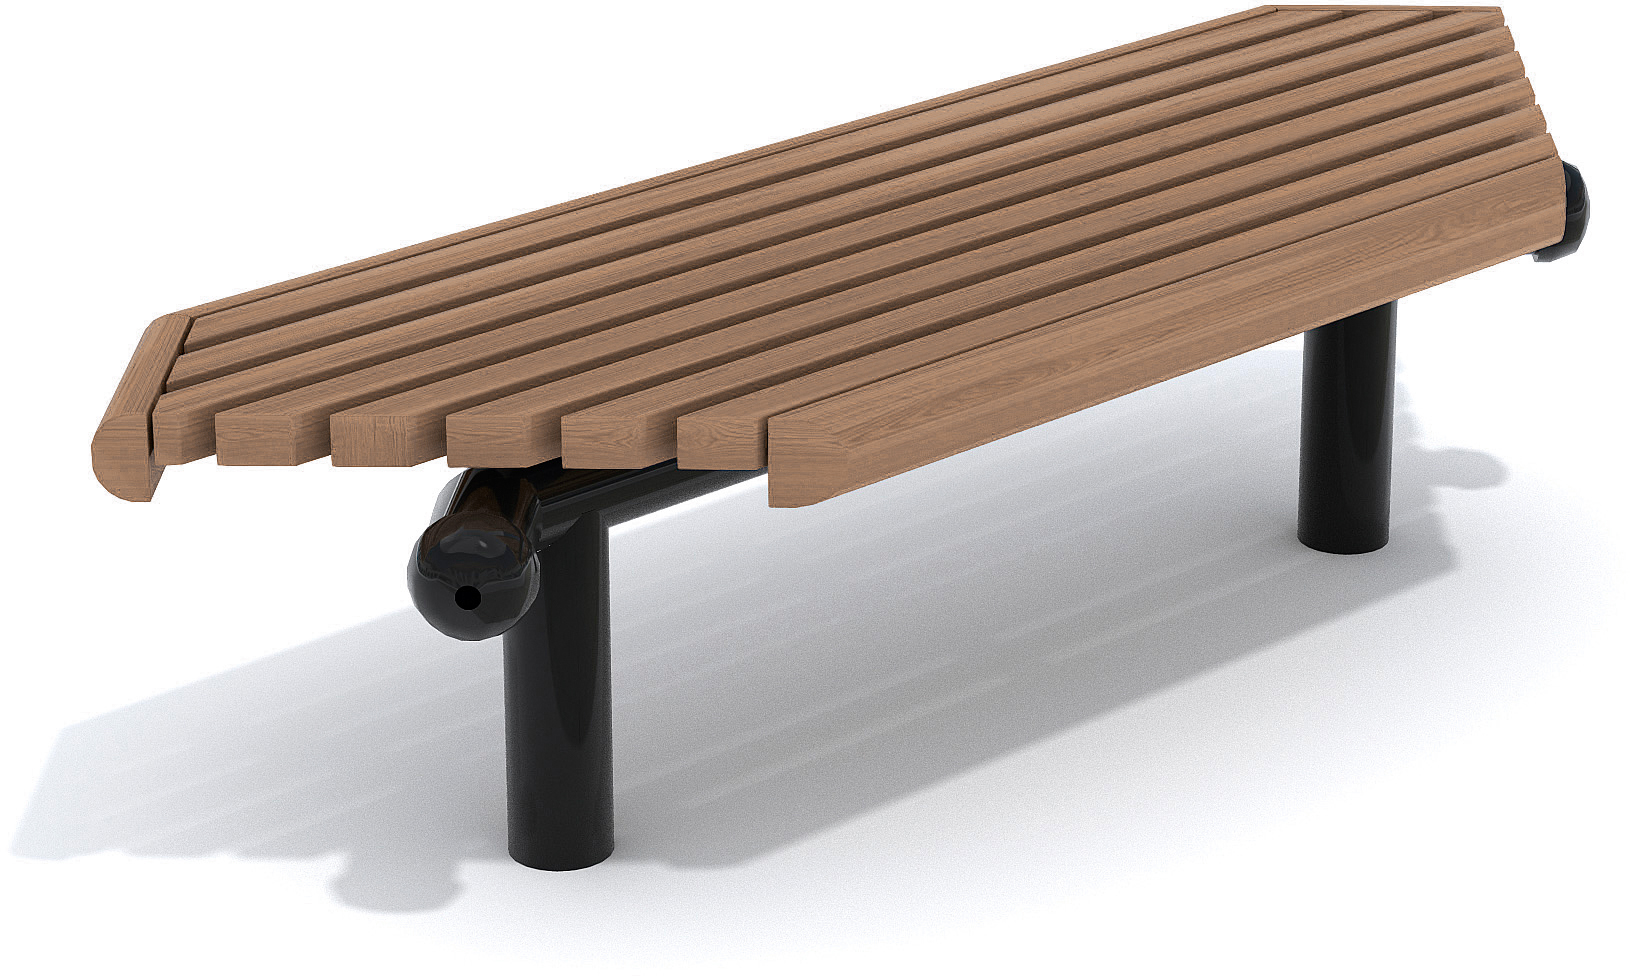 City-Form Corner Bench